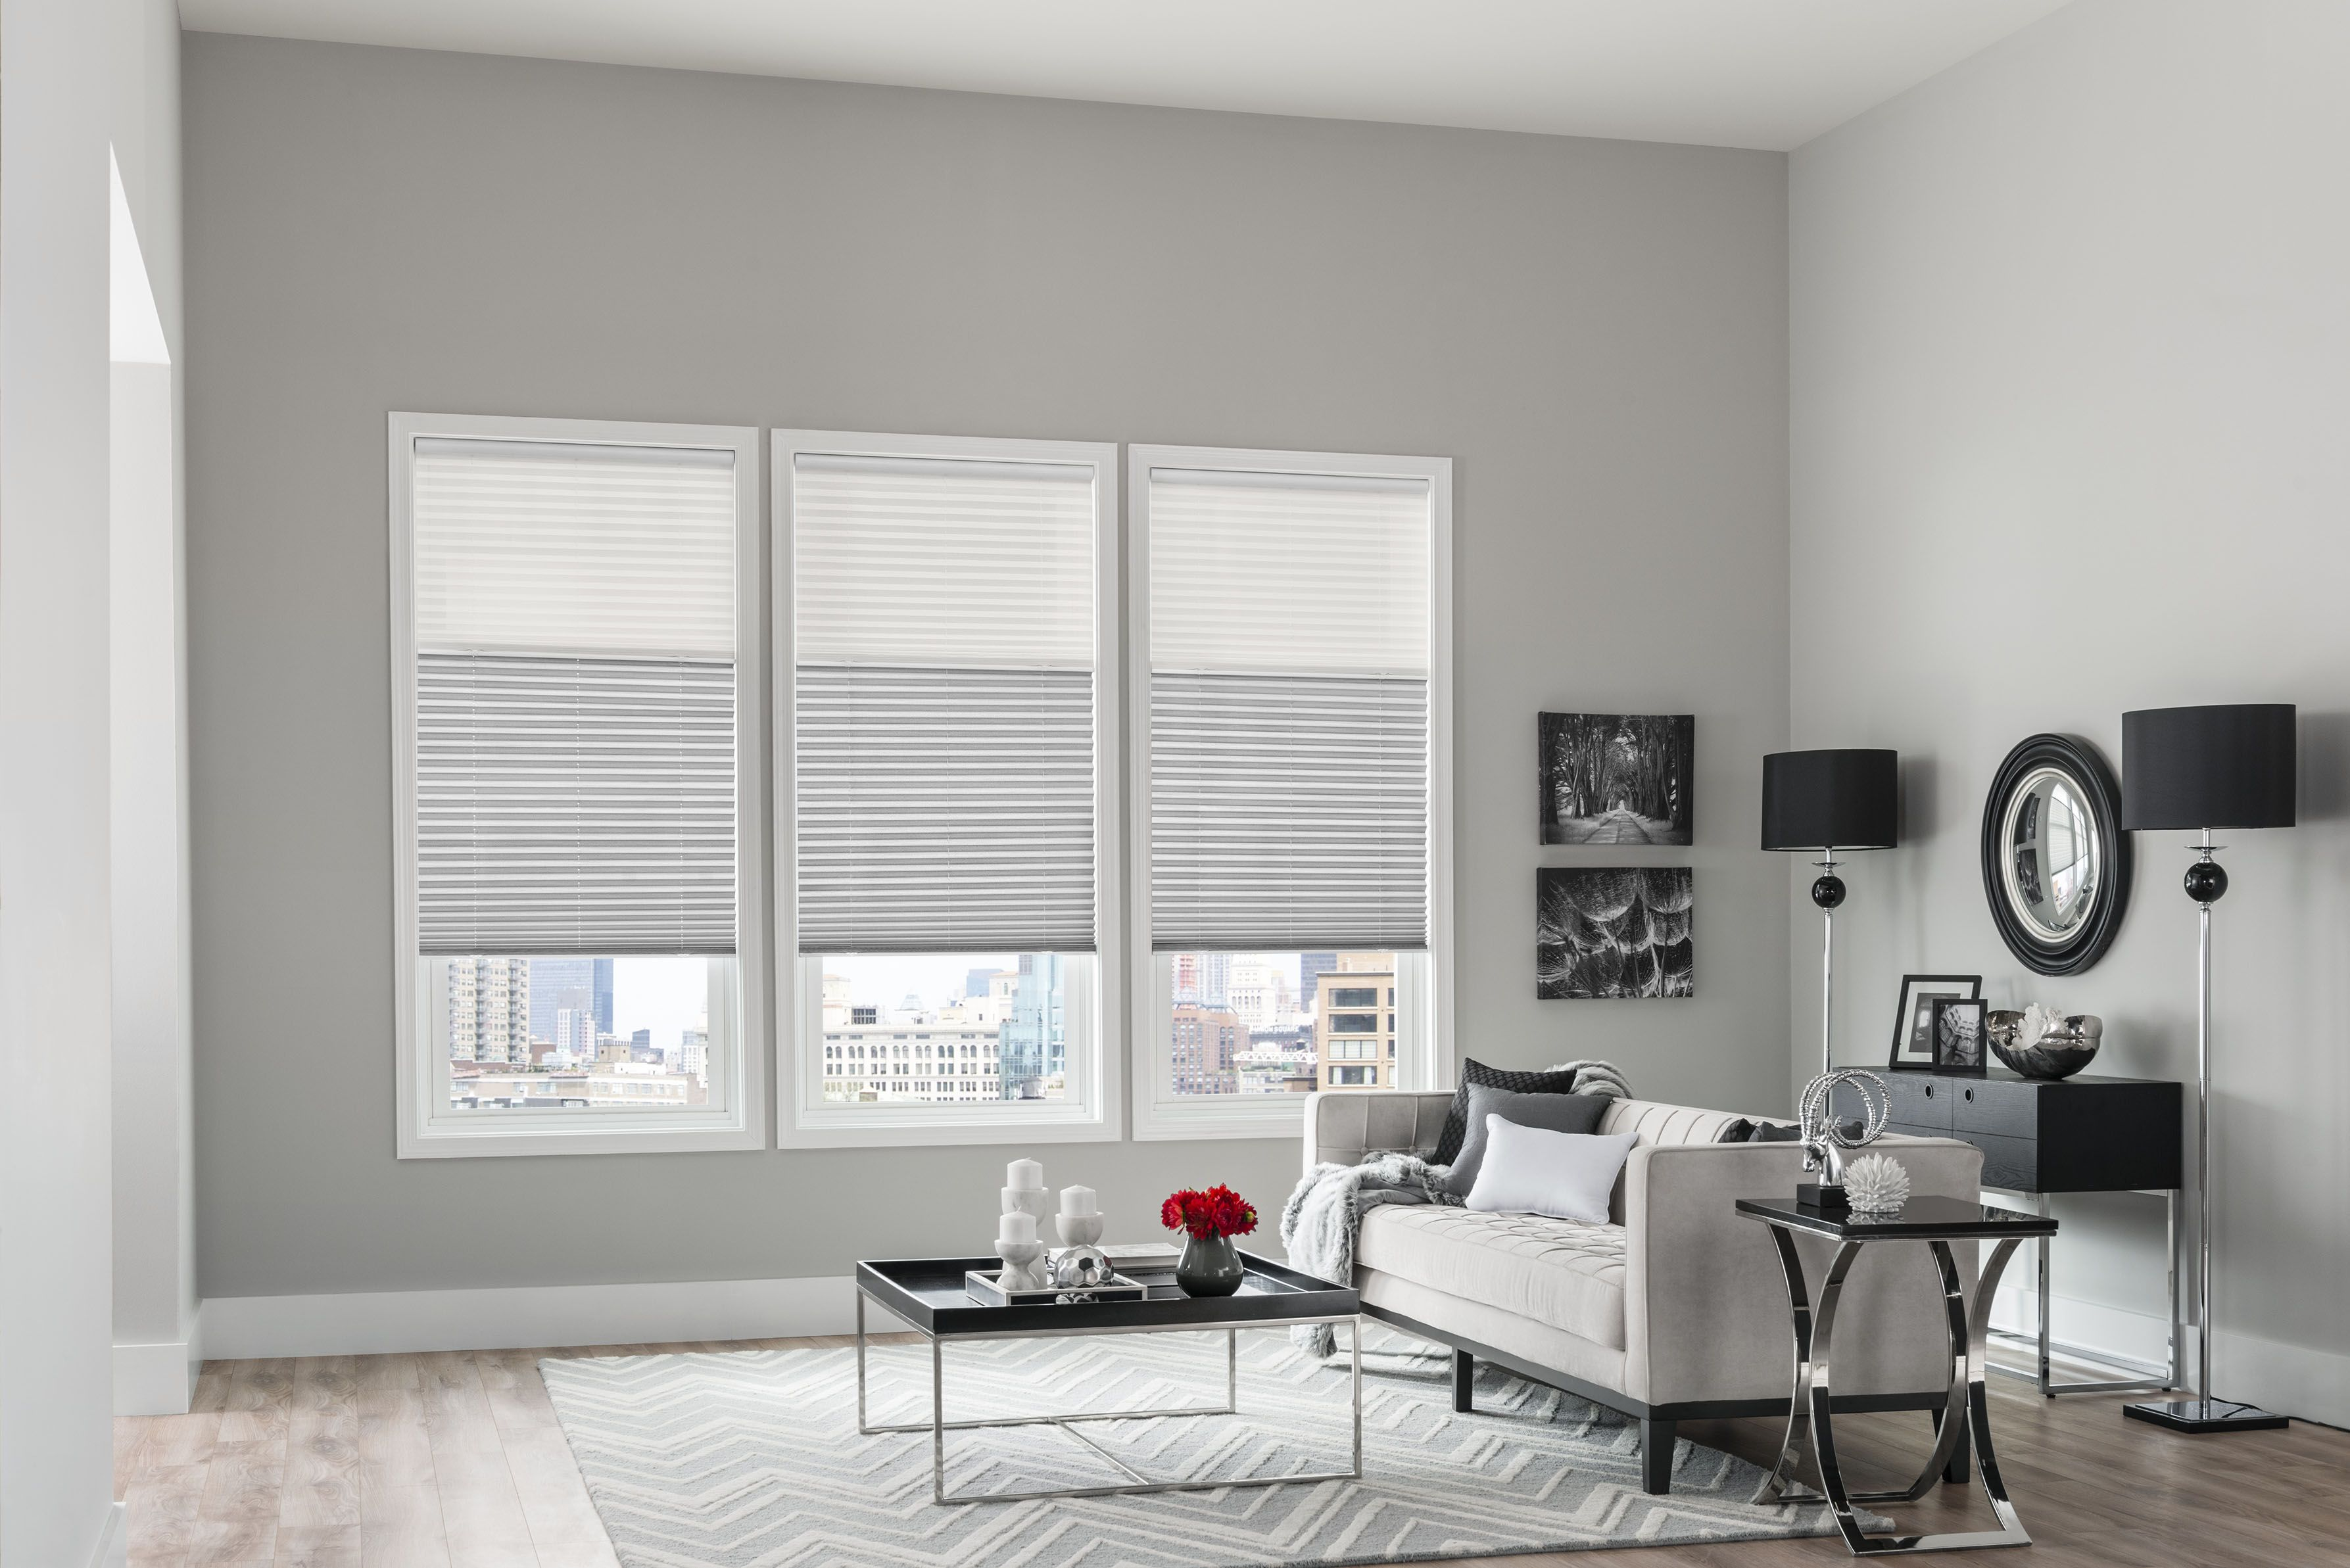 monochromatic gray cellular shades blend beautifully in this chic living room  accents of black